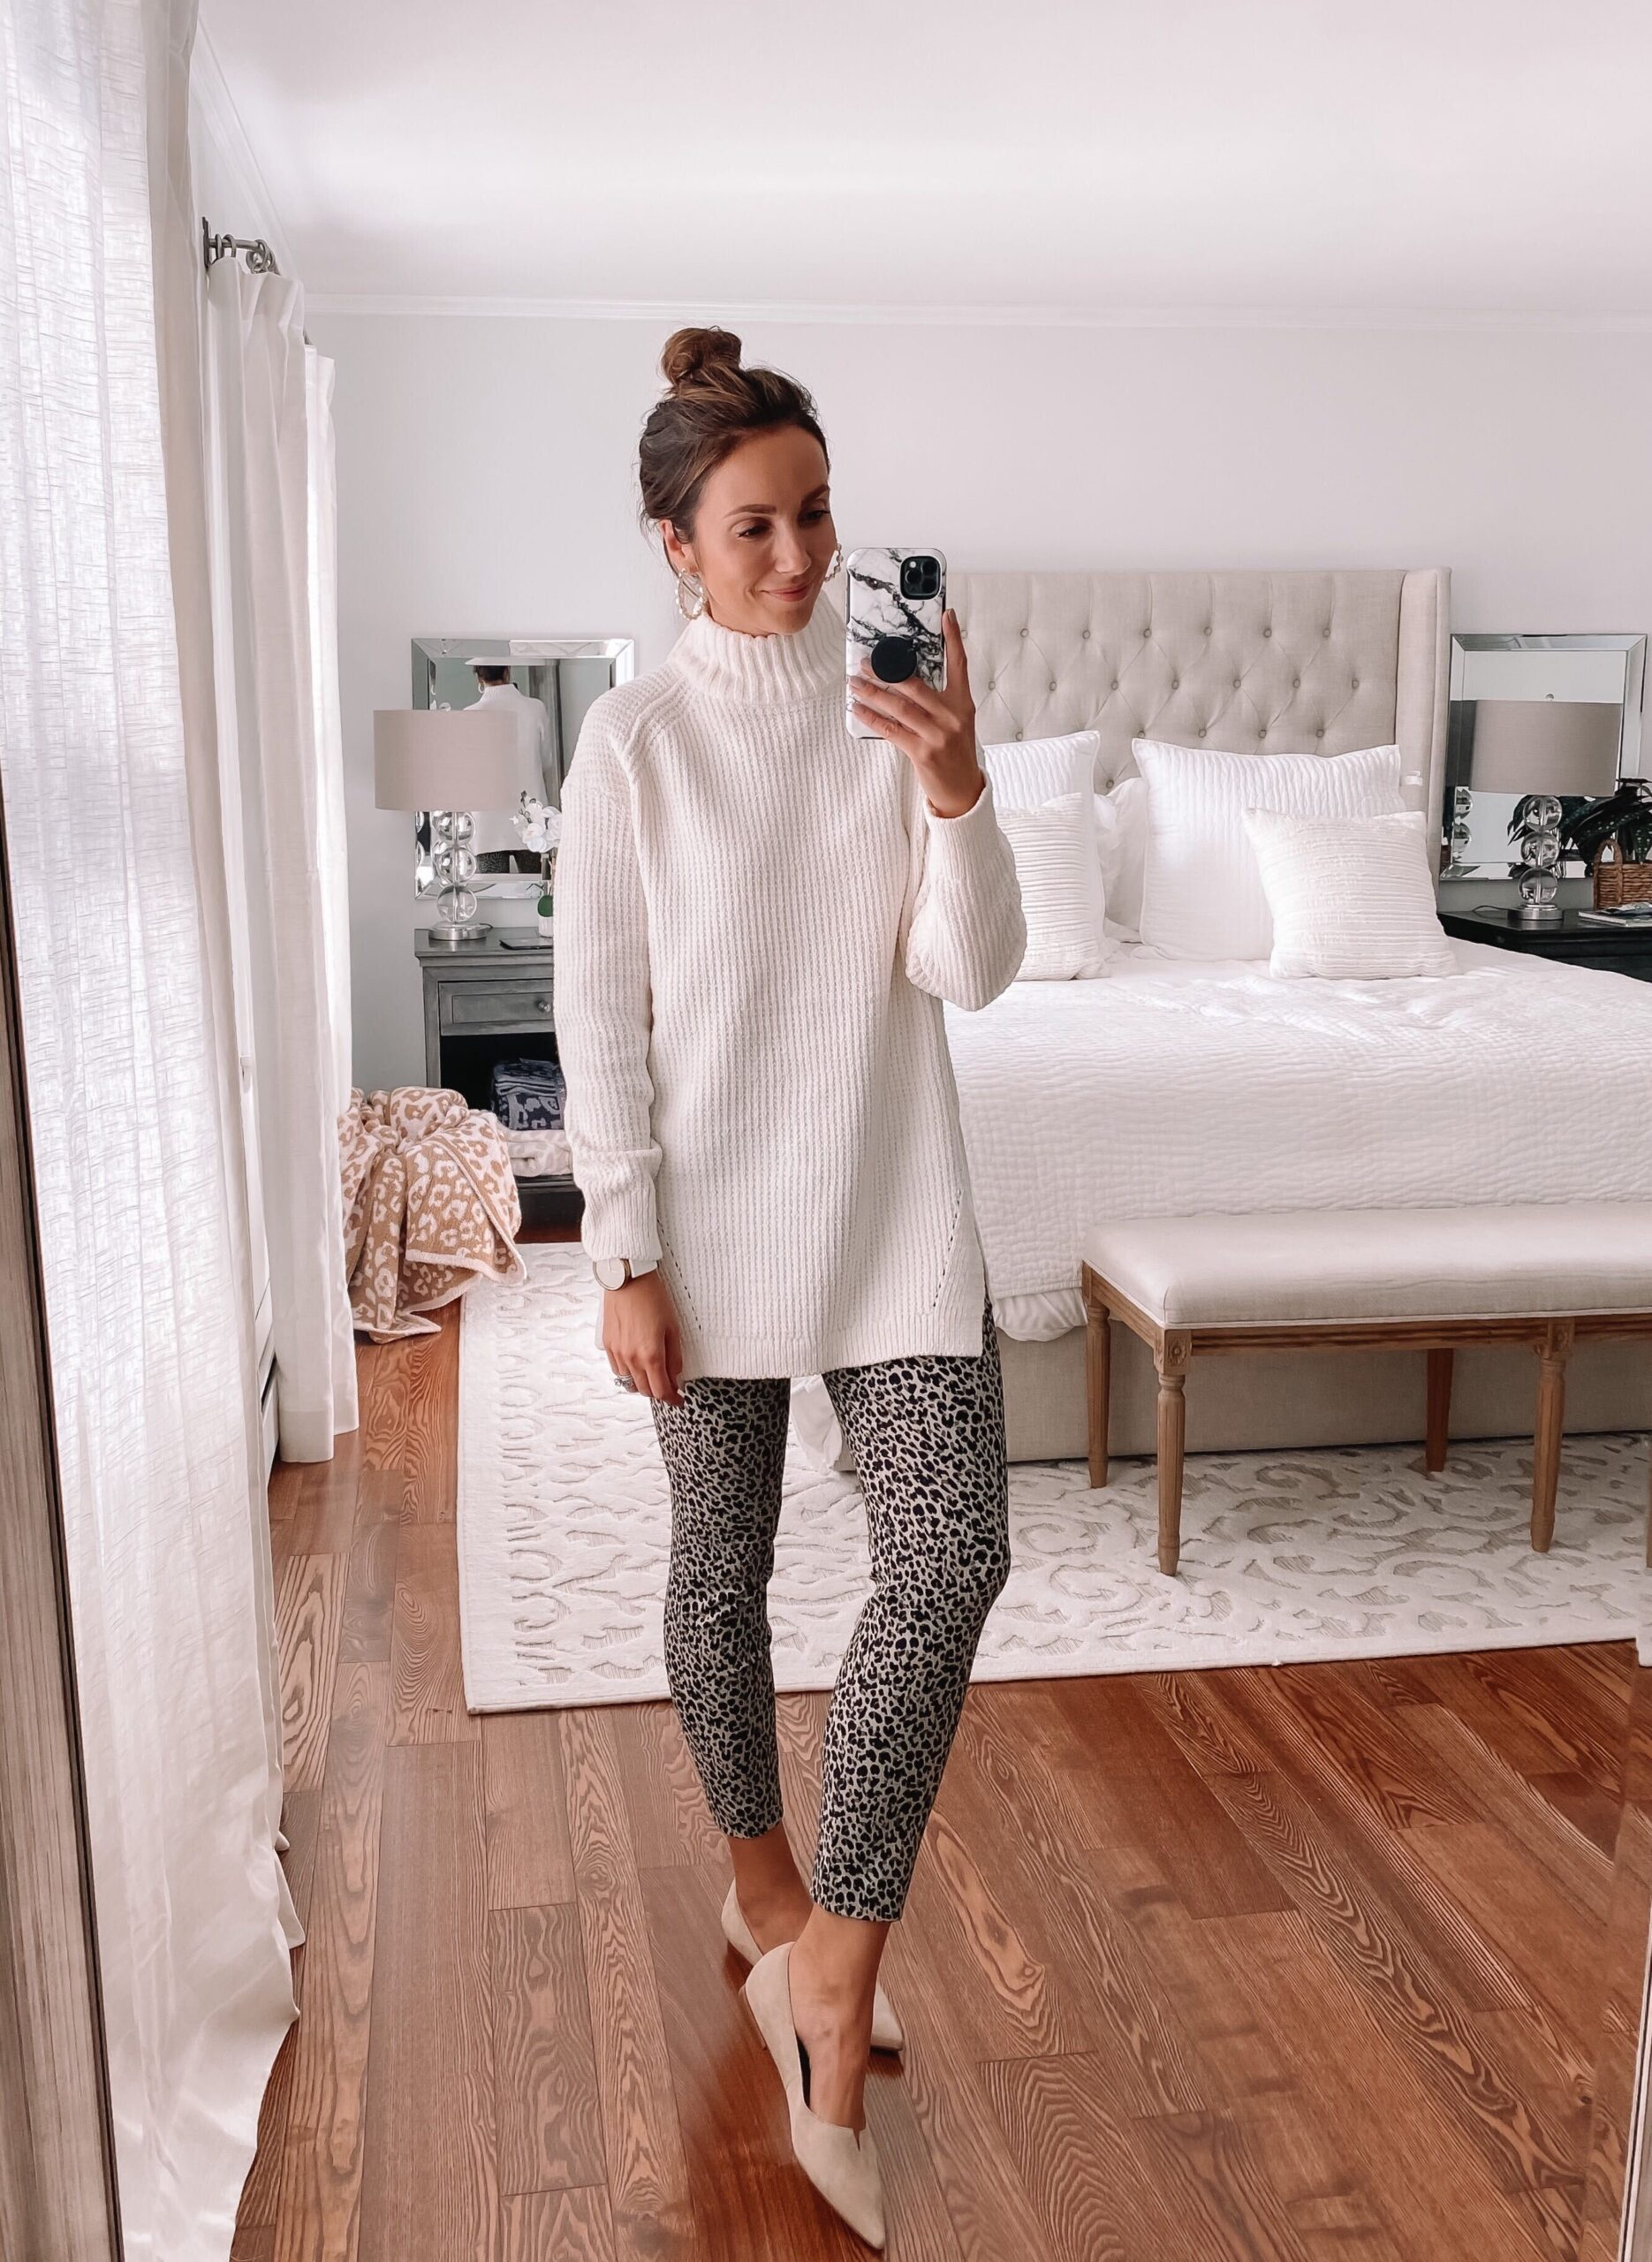 target finds, tunic sweater, leopard pants, workwear style